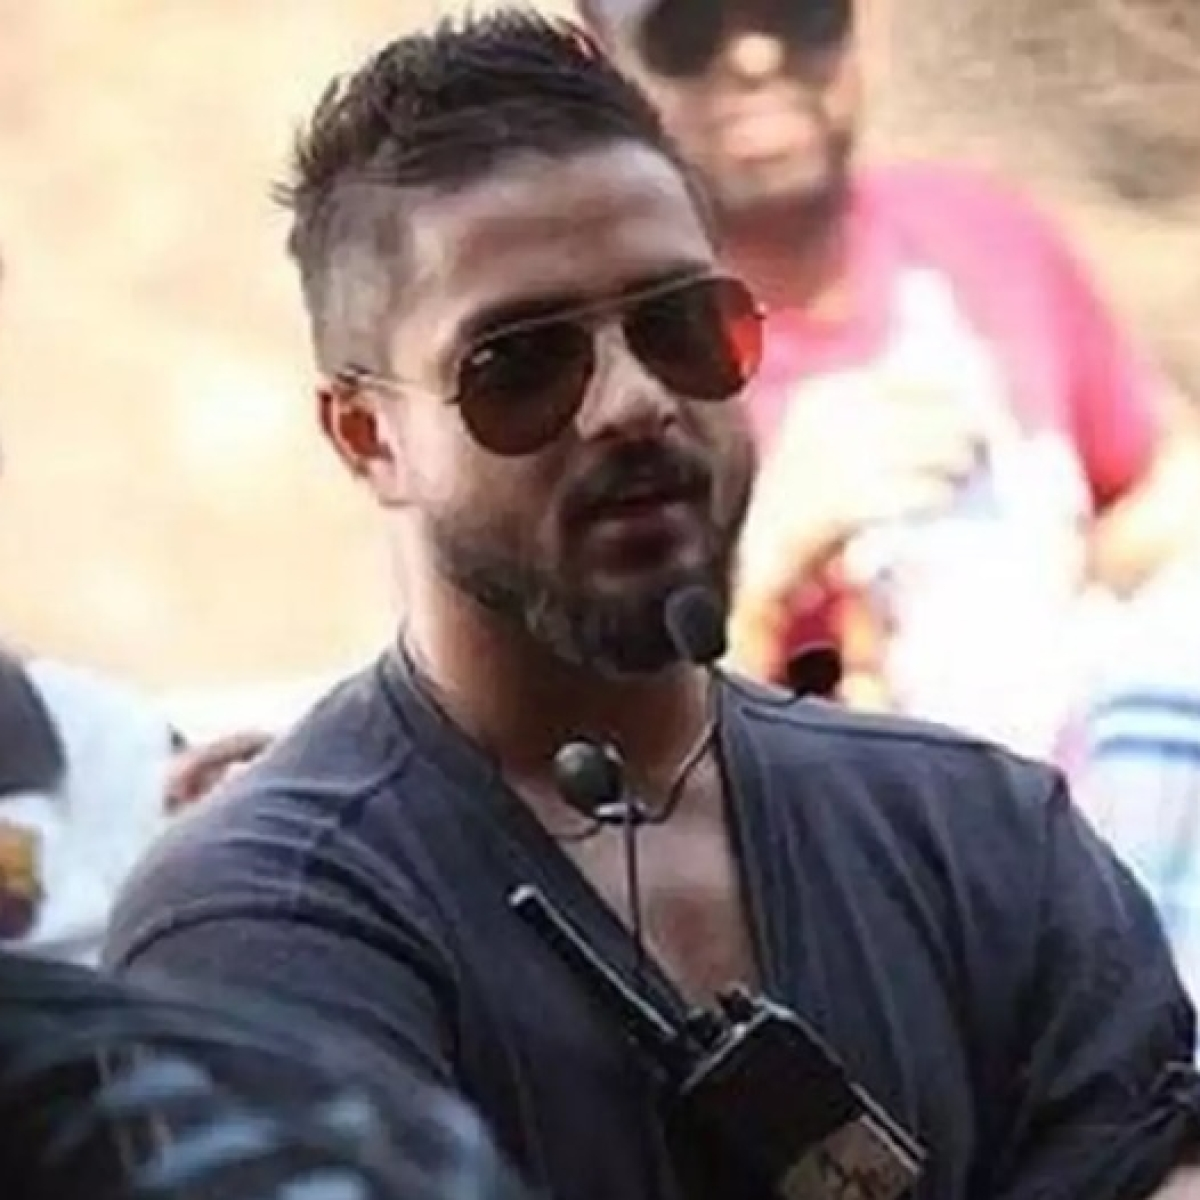 'I was told to name Karan Johar': Former production executive tells court NCB asked him to implicate filmmaker, others